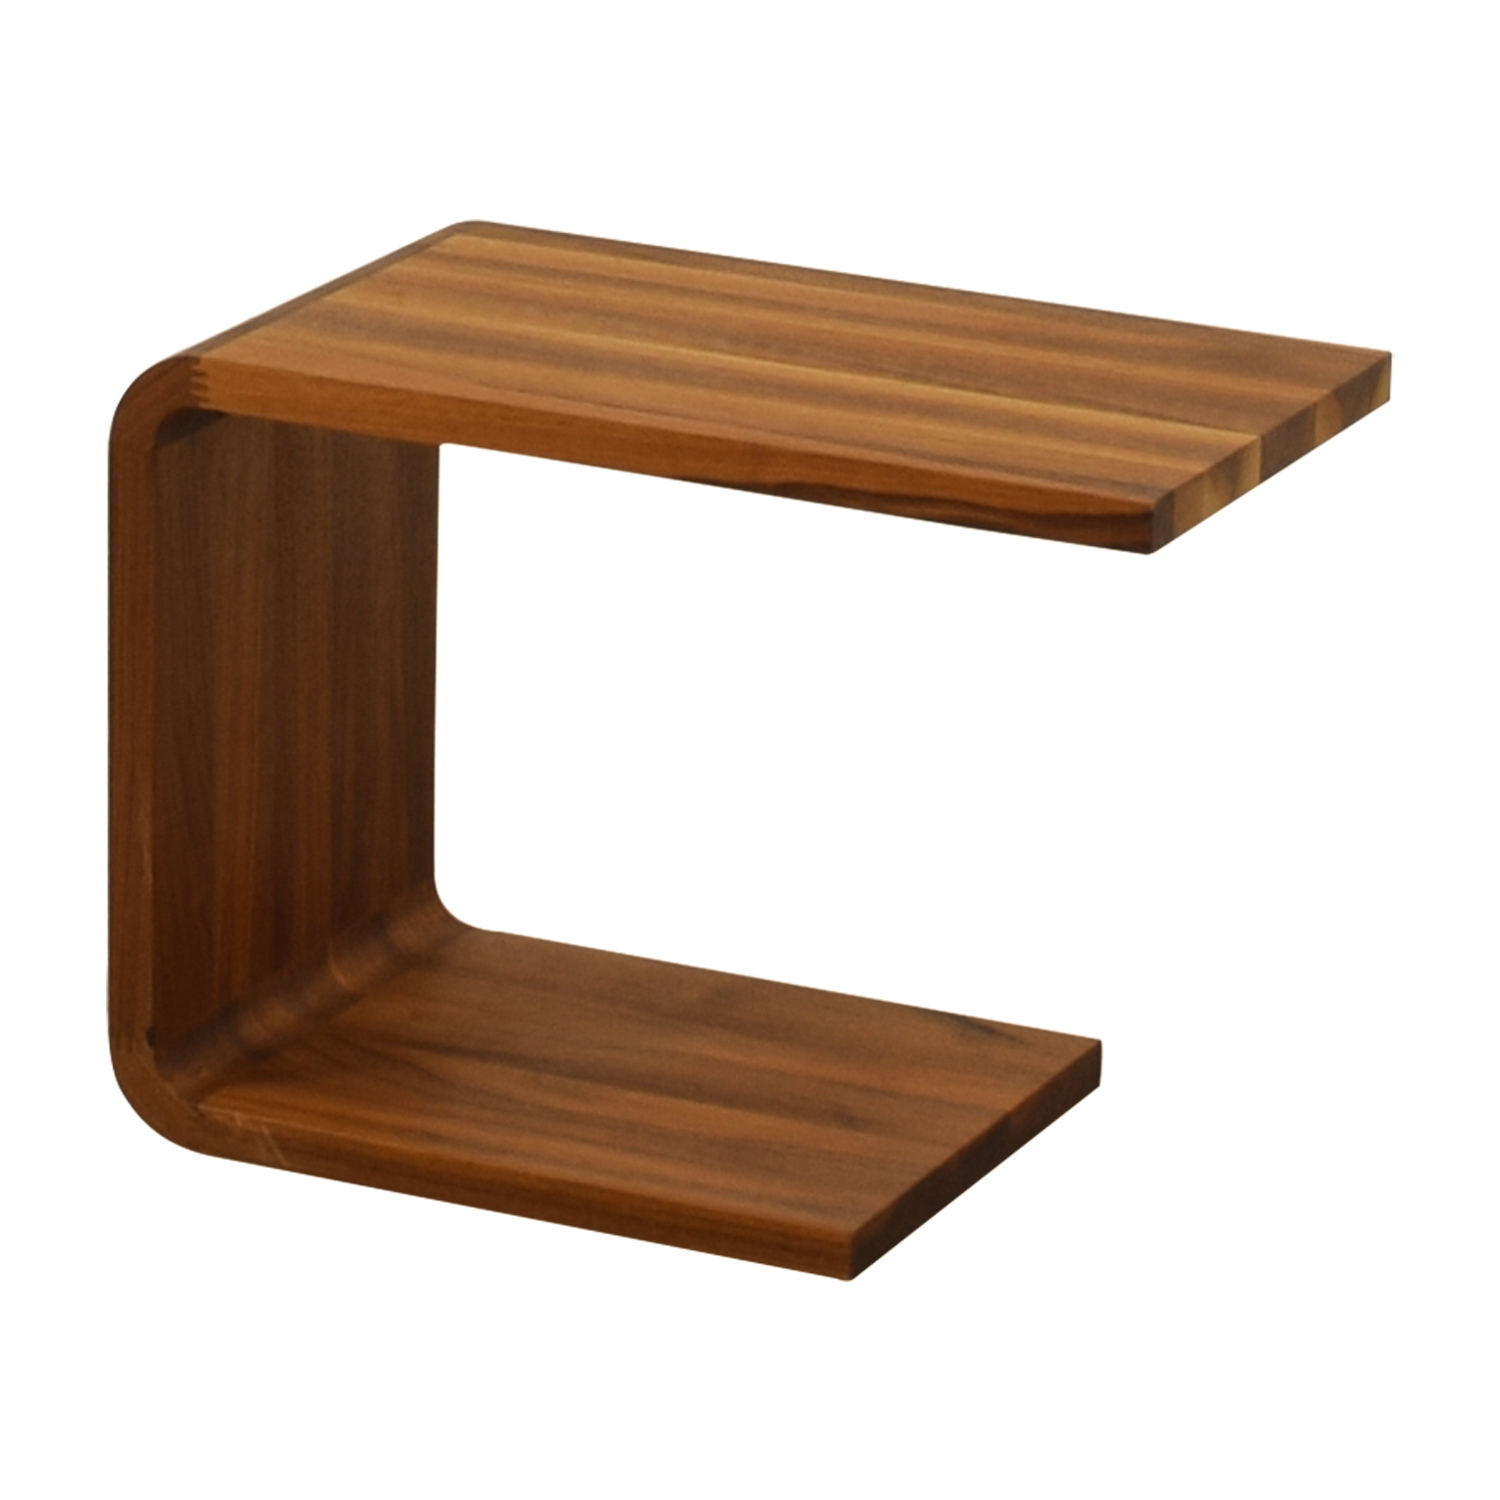 Zeitraum Zeitraum Formstelle Waiter Side Table nj